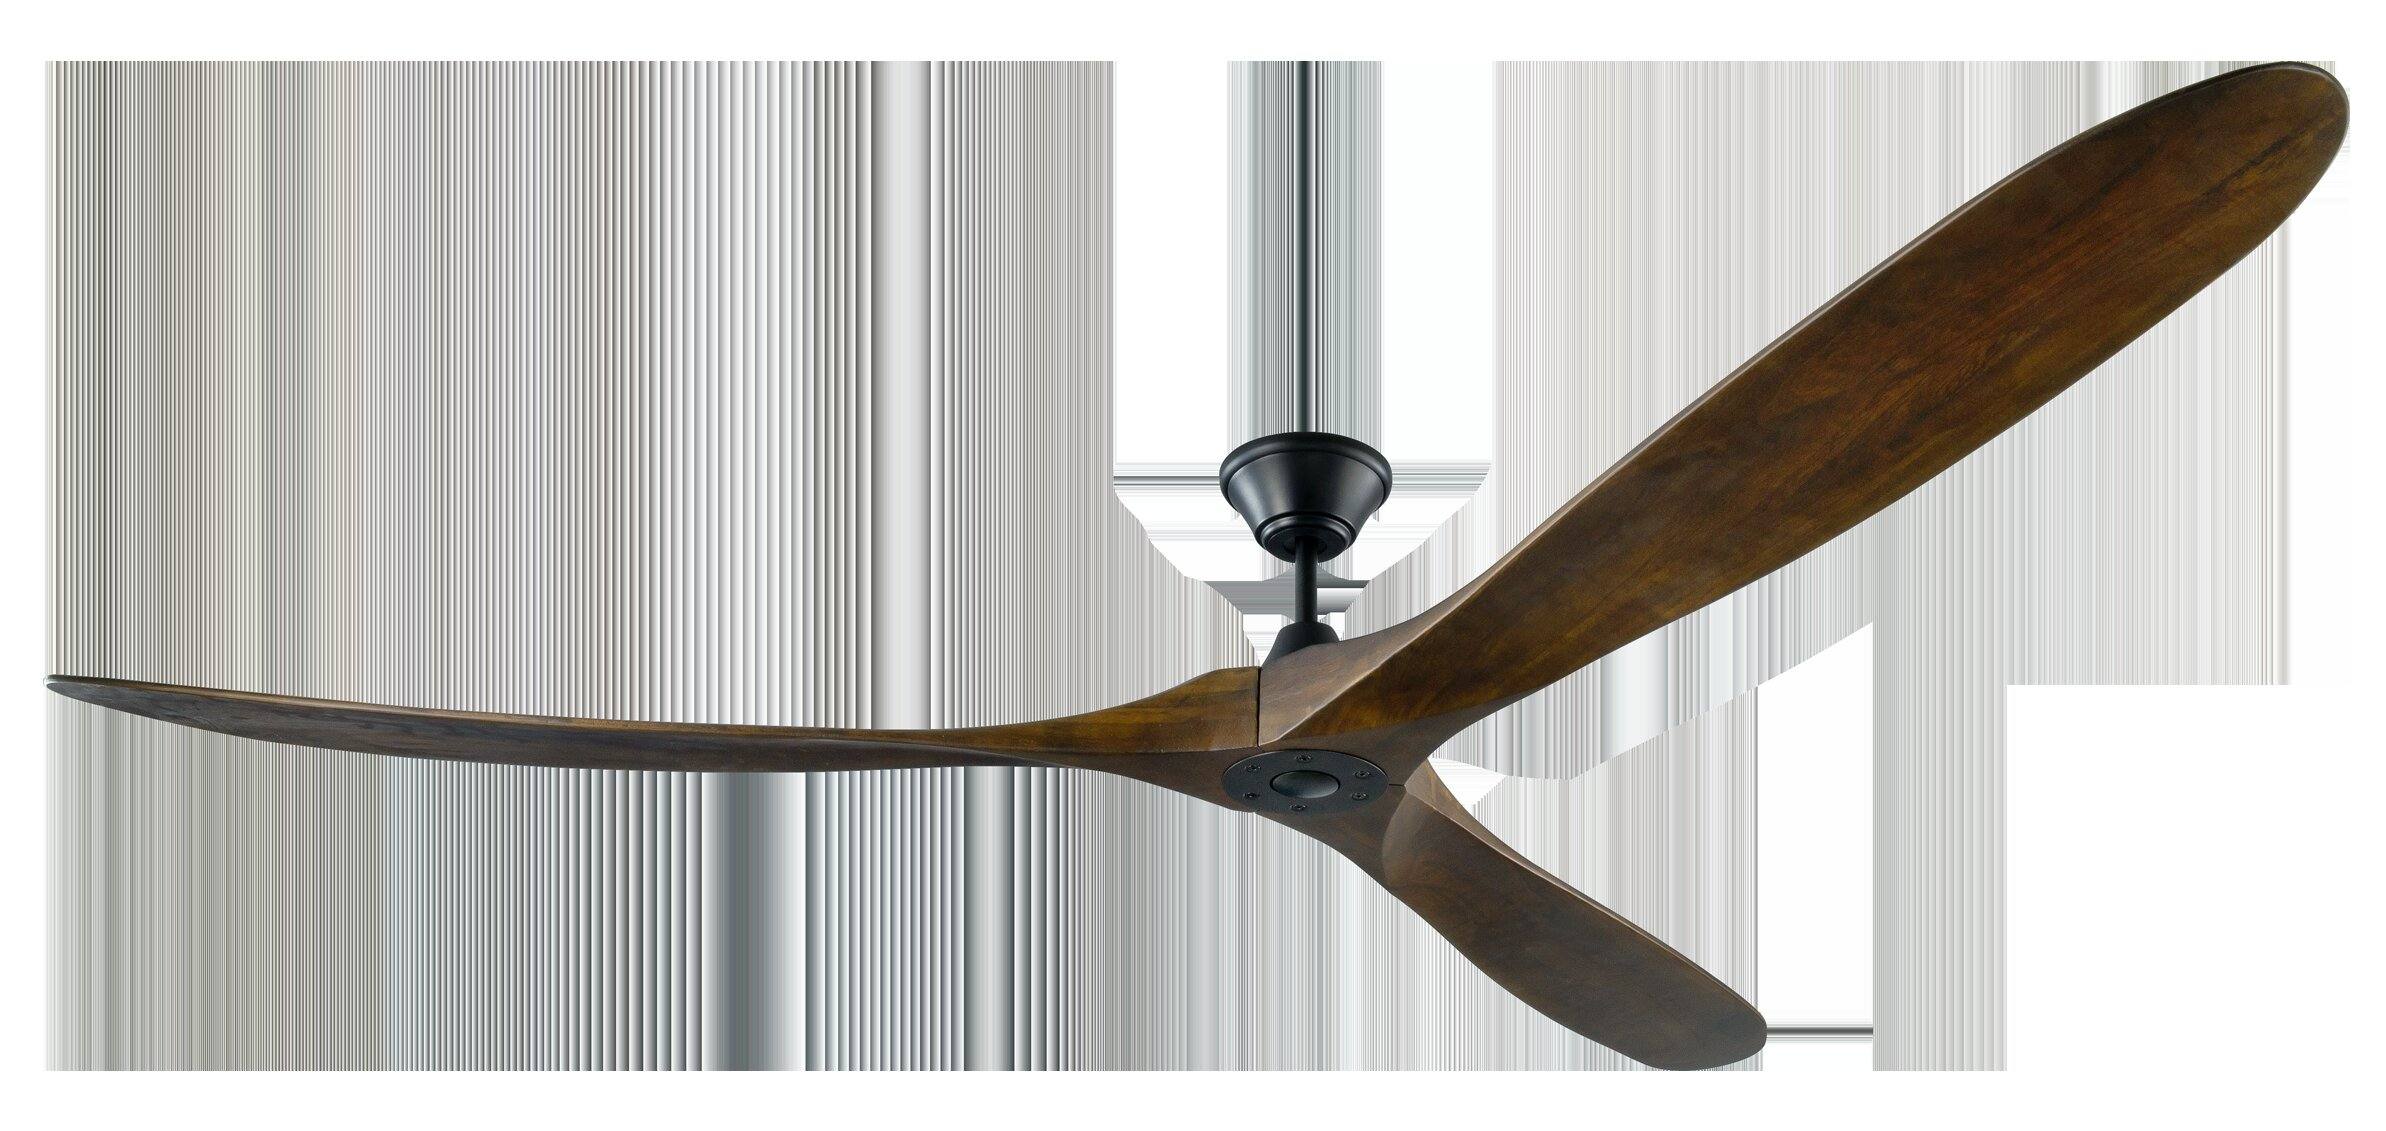 "Rosecliff Heights 88"" Oleander 3 Blade Ceiling Fan with Remote"